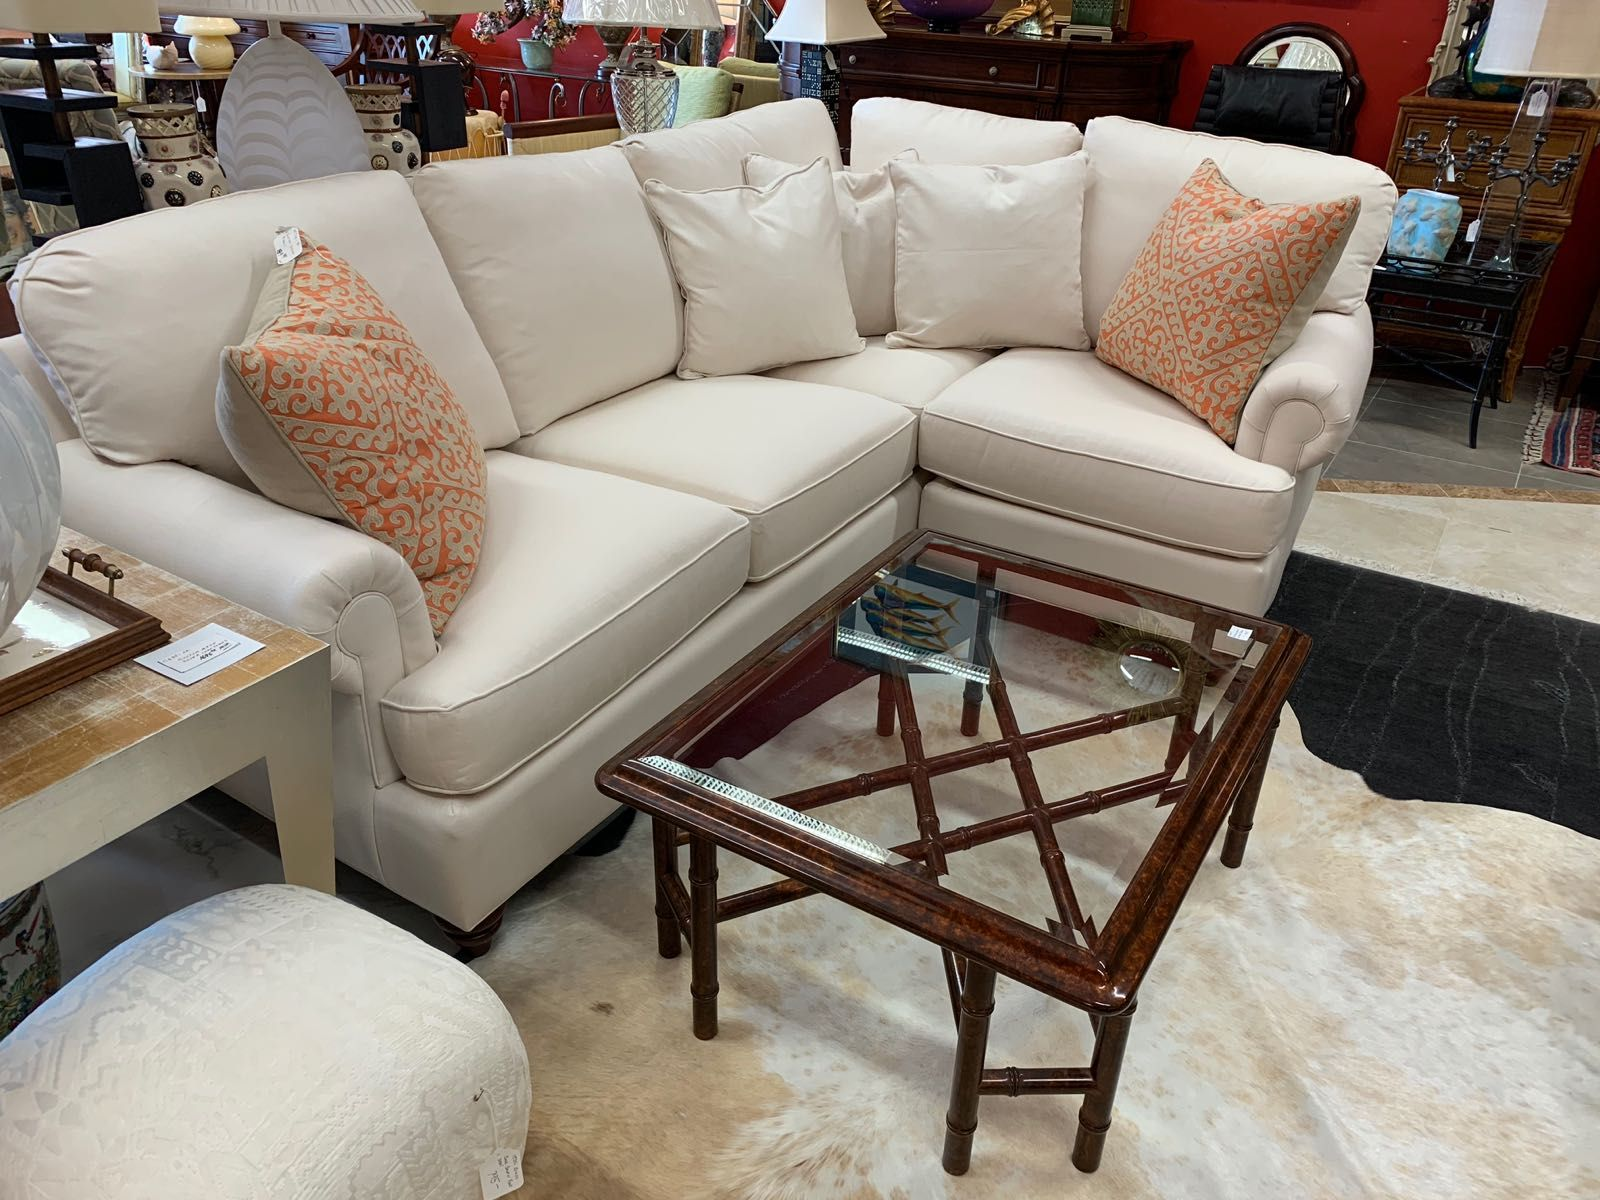 Sectional For A Small Space Big Comfy L Sofa With Roll Arms And Big Cushions All Covered In Durable Off White Cotto Big Cushions Sell Used Furniture Furniture